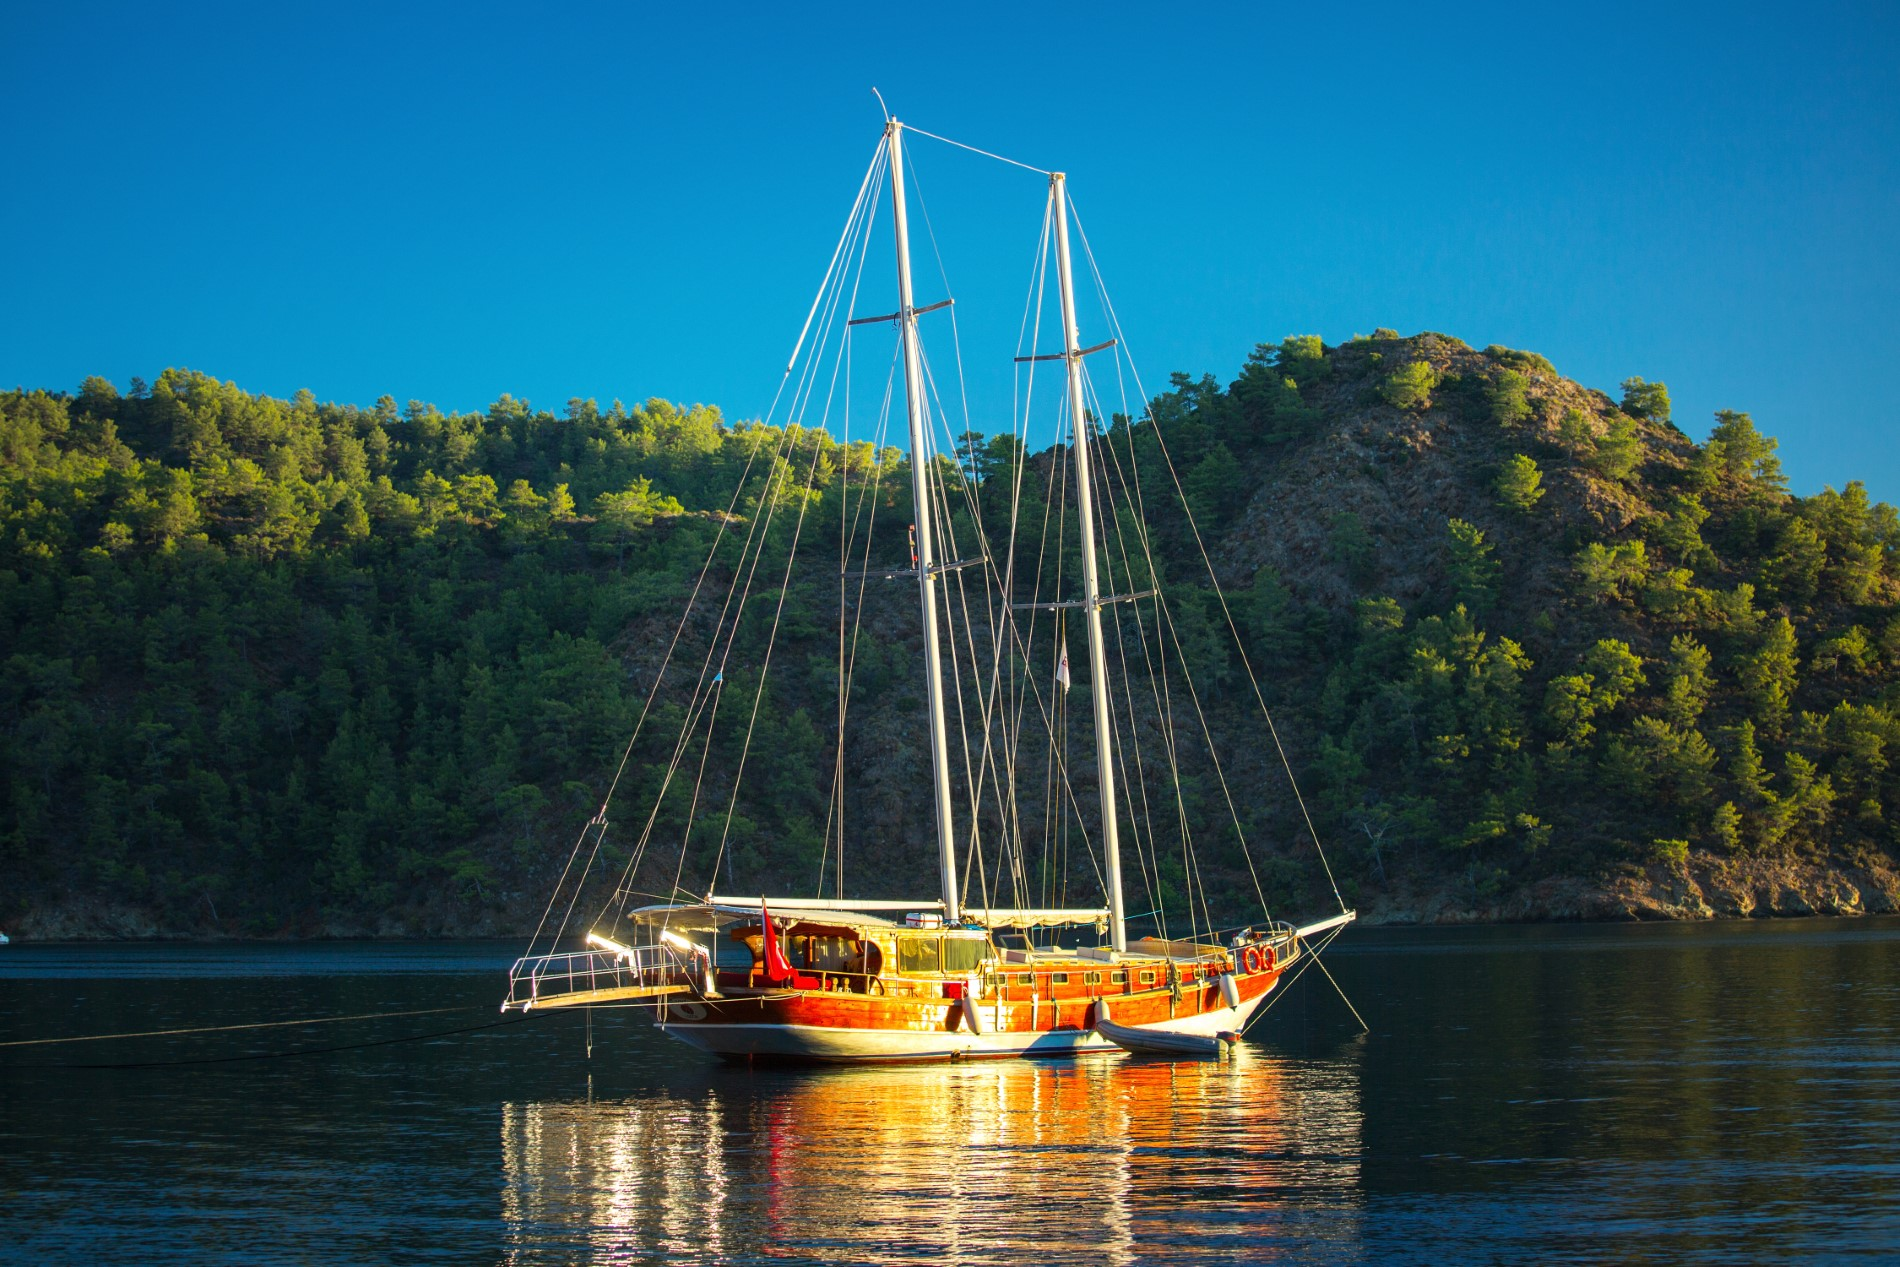 Kemer Kekova Kemer Cabin Cruise - Blue Cruise,Light Tours Blue Cruise, Blue Cruise, Discount Tours 174